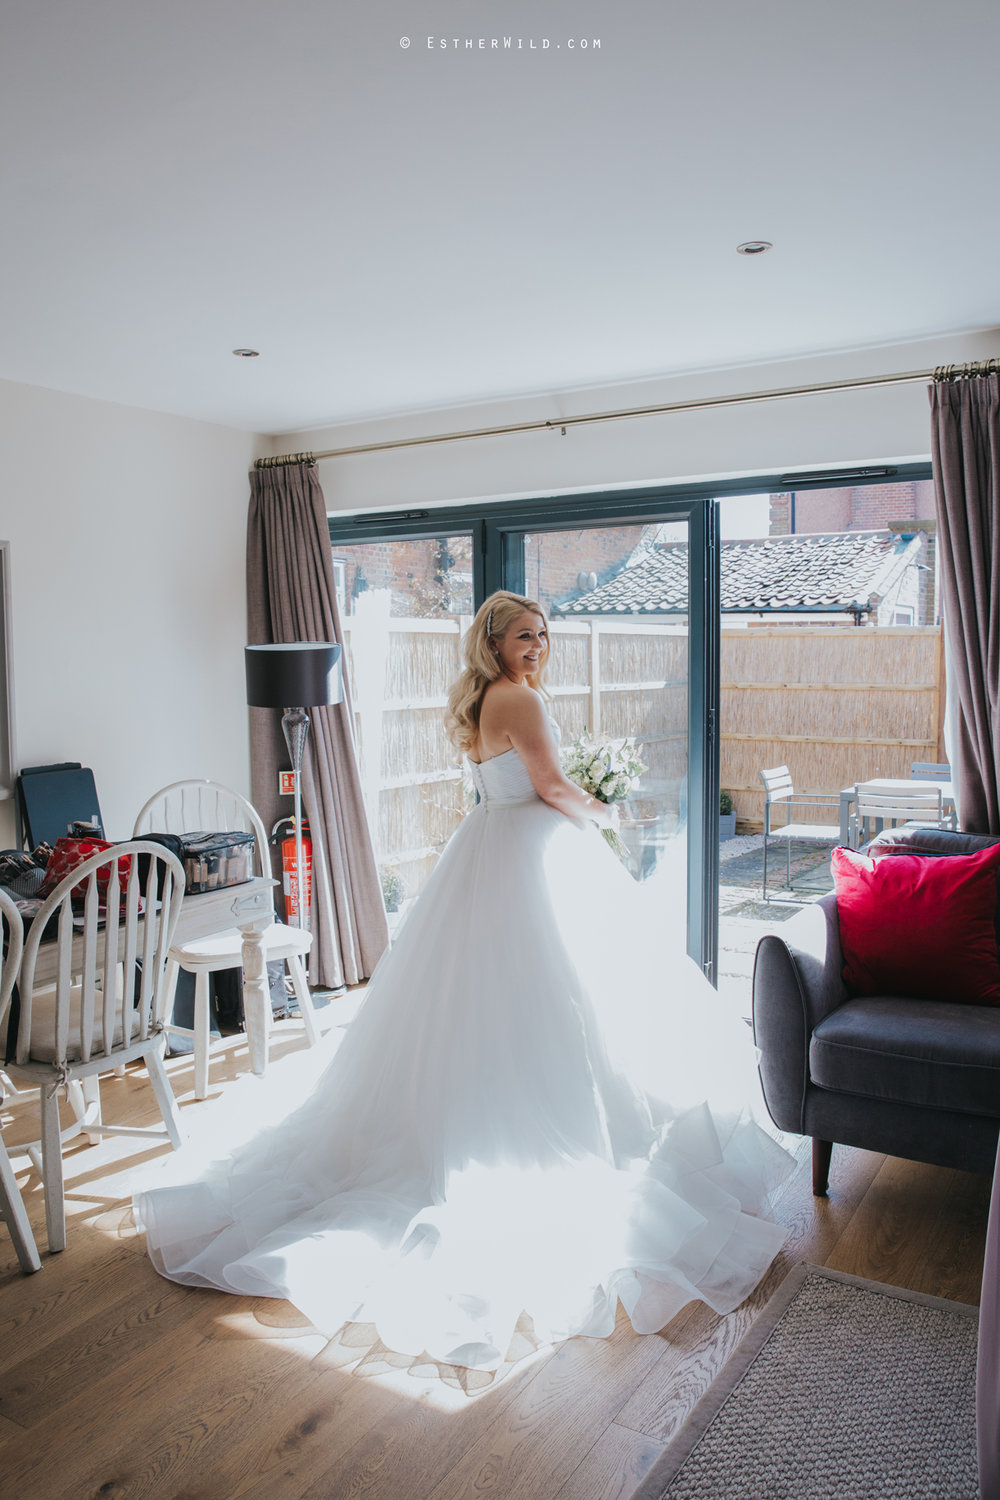 Norfolk_Mead_Hotel_Norwich_Wedding_Copyright_Esther_Wild_Photographer_IMG_1052.jpg